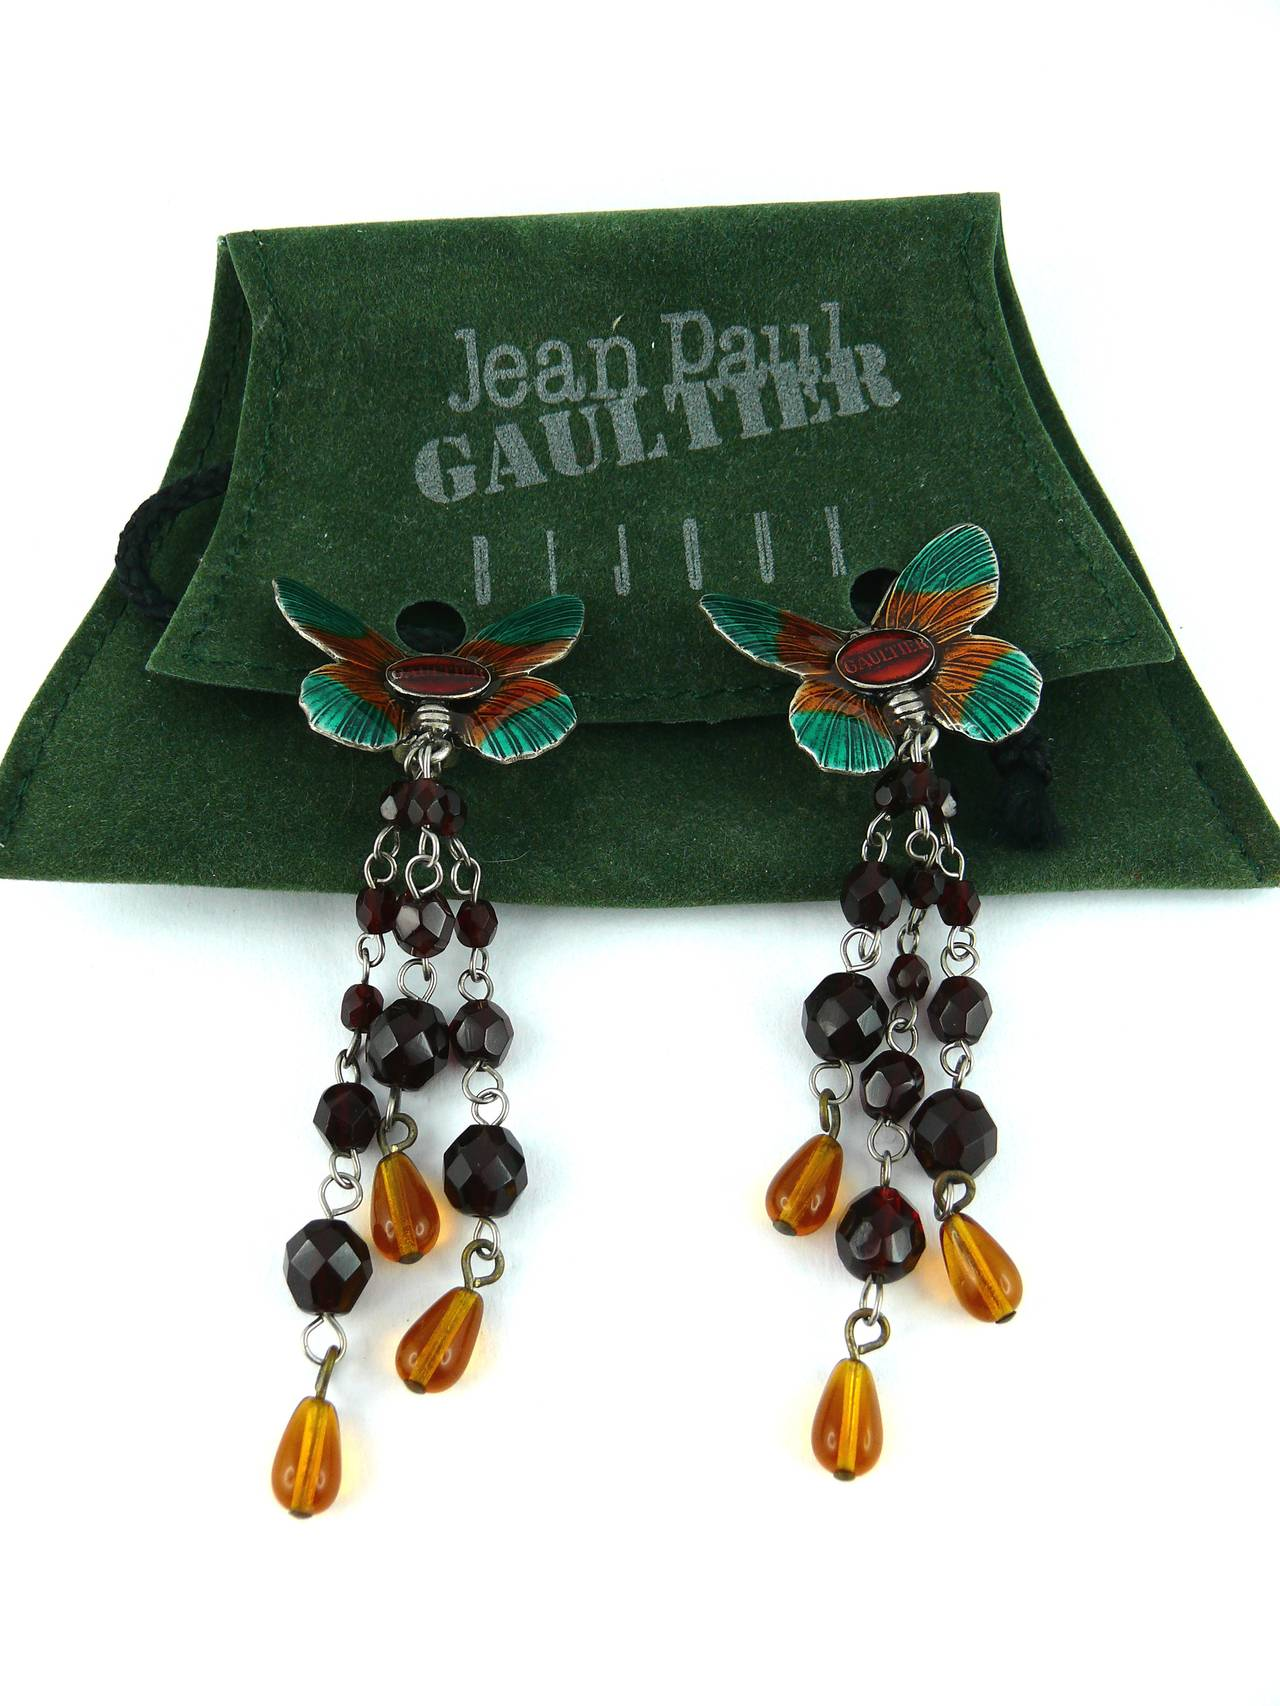 JEAN PAUL GAULTIER stunning vintage enamel butterfly dangling earrings (clip-on) with glass bead embellishment.